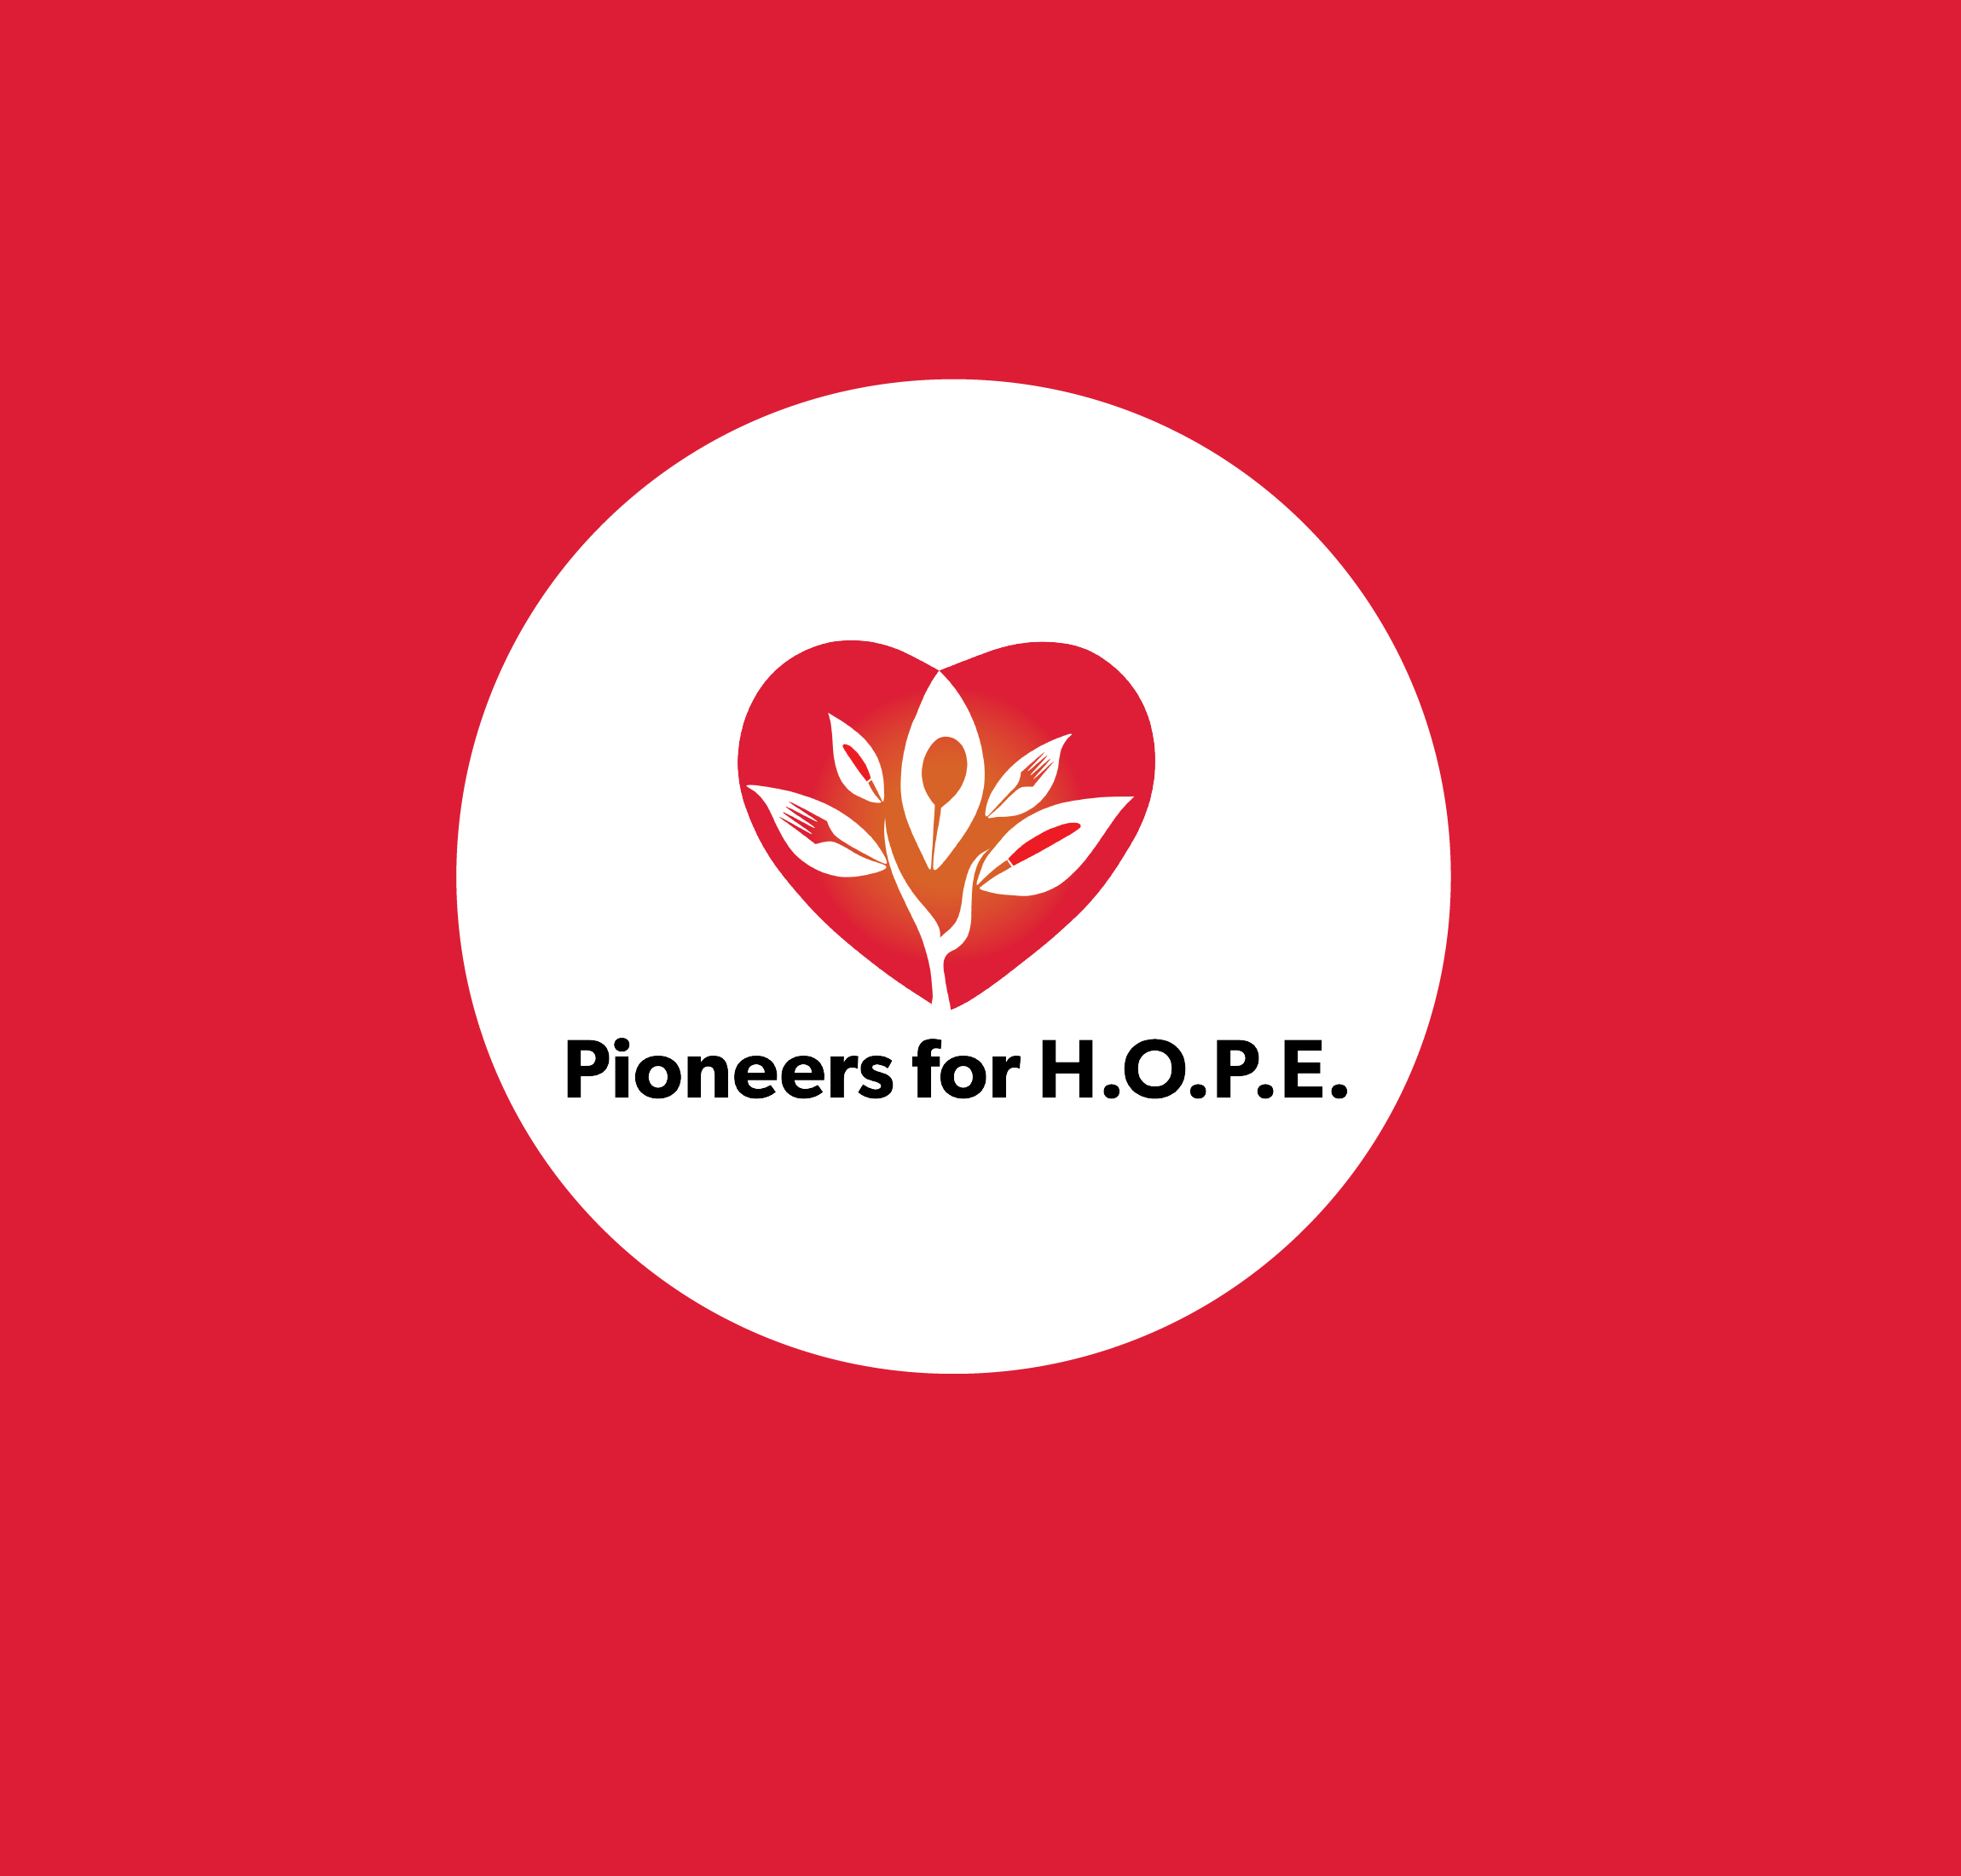 Pioneers for H.O.P.E. Logo